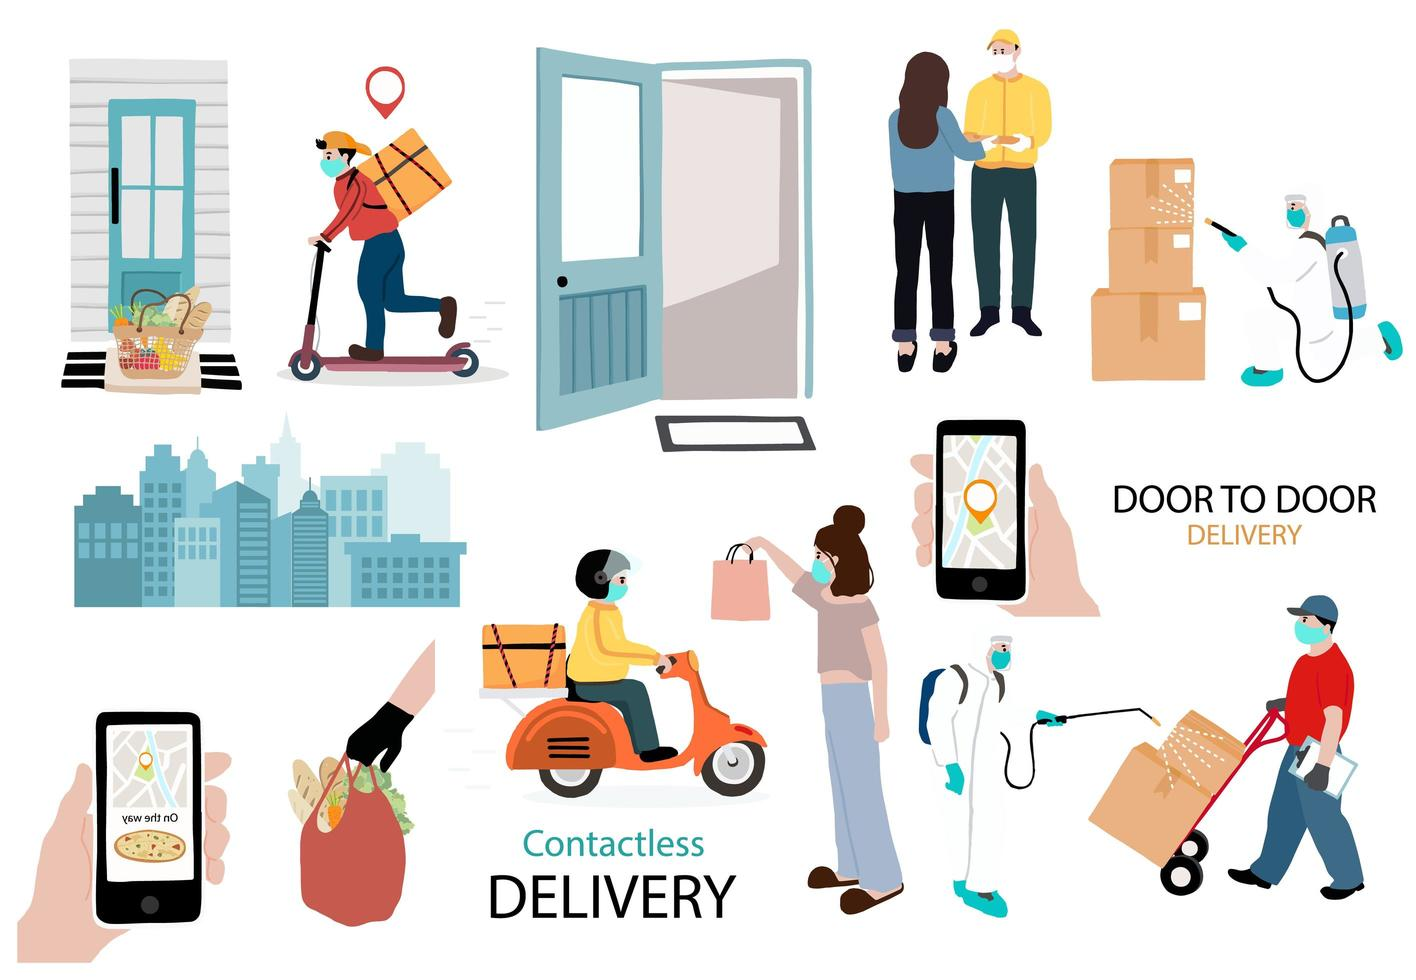 Contactless online service and delivery image set vector